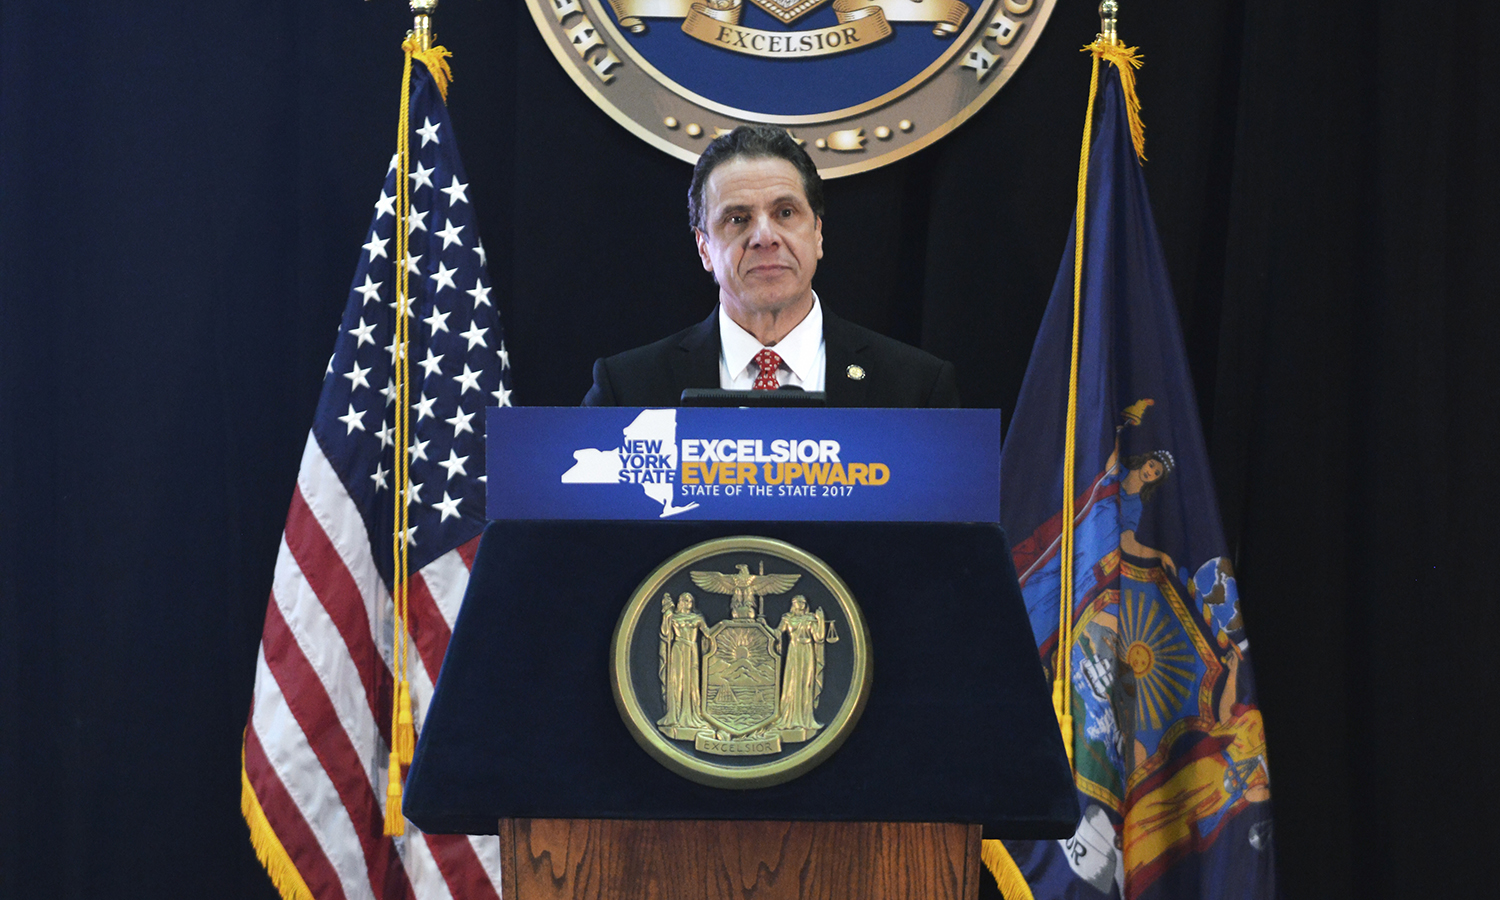 """New York Governor Andrew Cuomo speaking at New York's """"State of the State"""" Address on Jan. 10, 2017 (photo credit: U.S. Air National Guard Photo by Staff Sgt. Christopher S. Muncy)."""